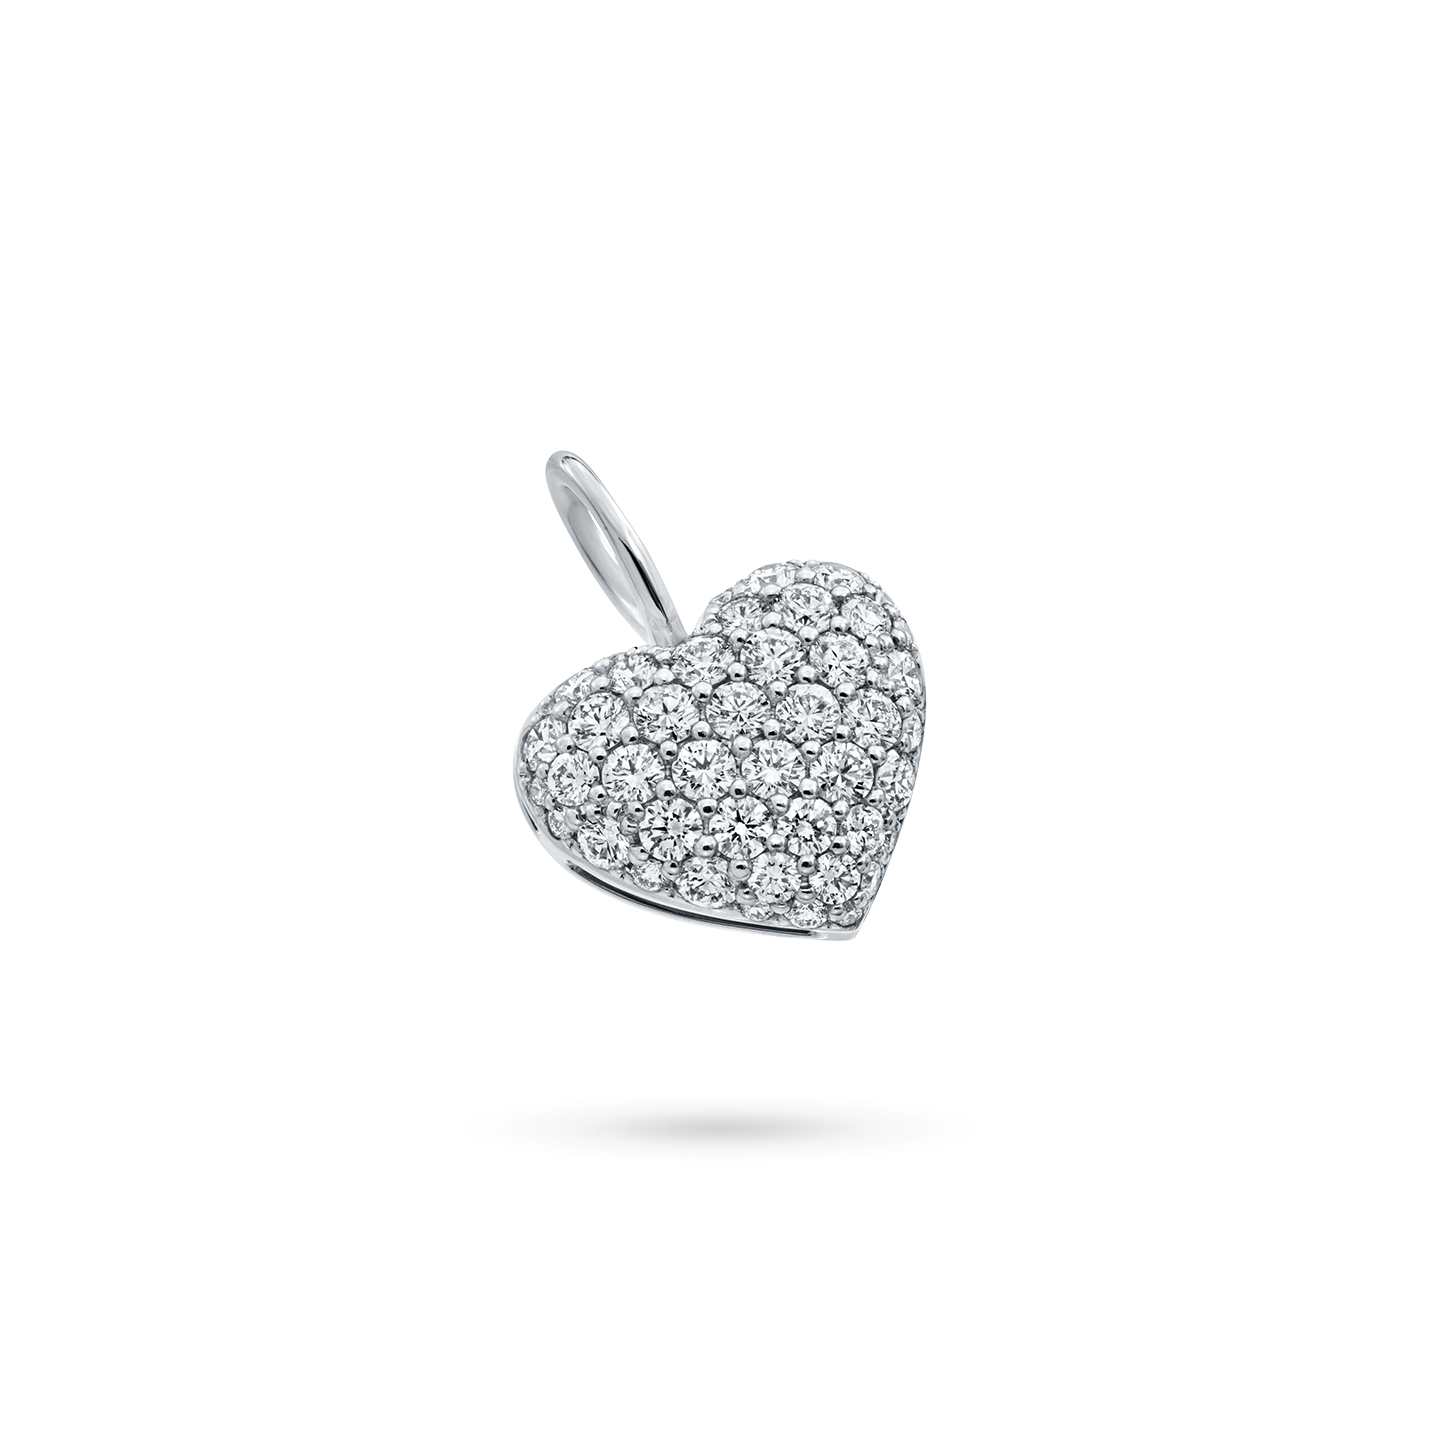 Pavé Heart Charm in Platinum, Product Image 1